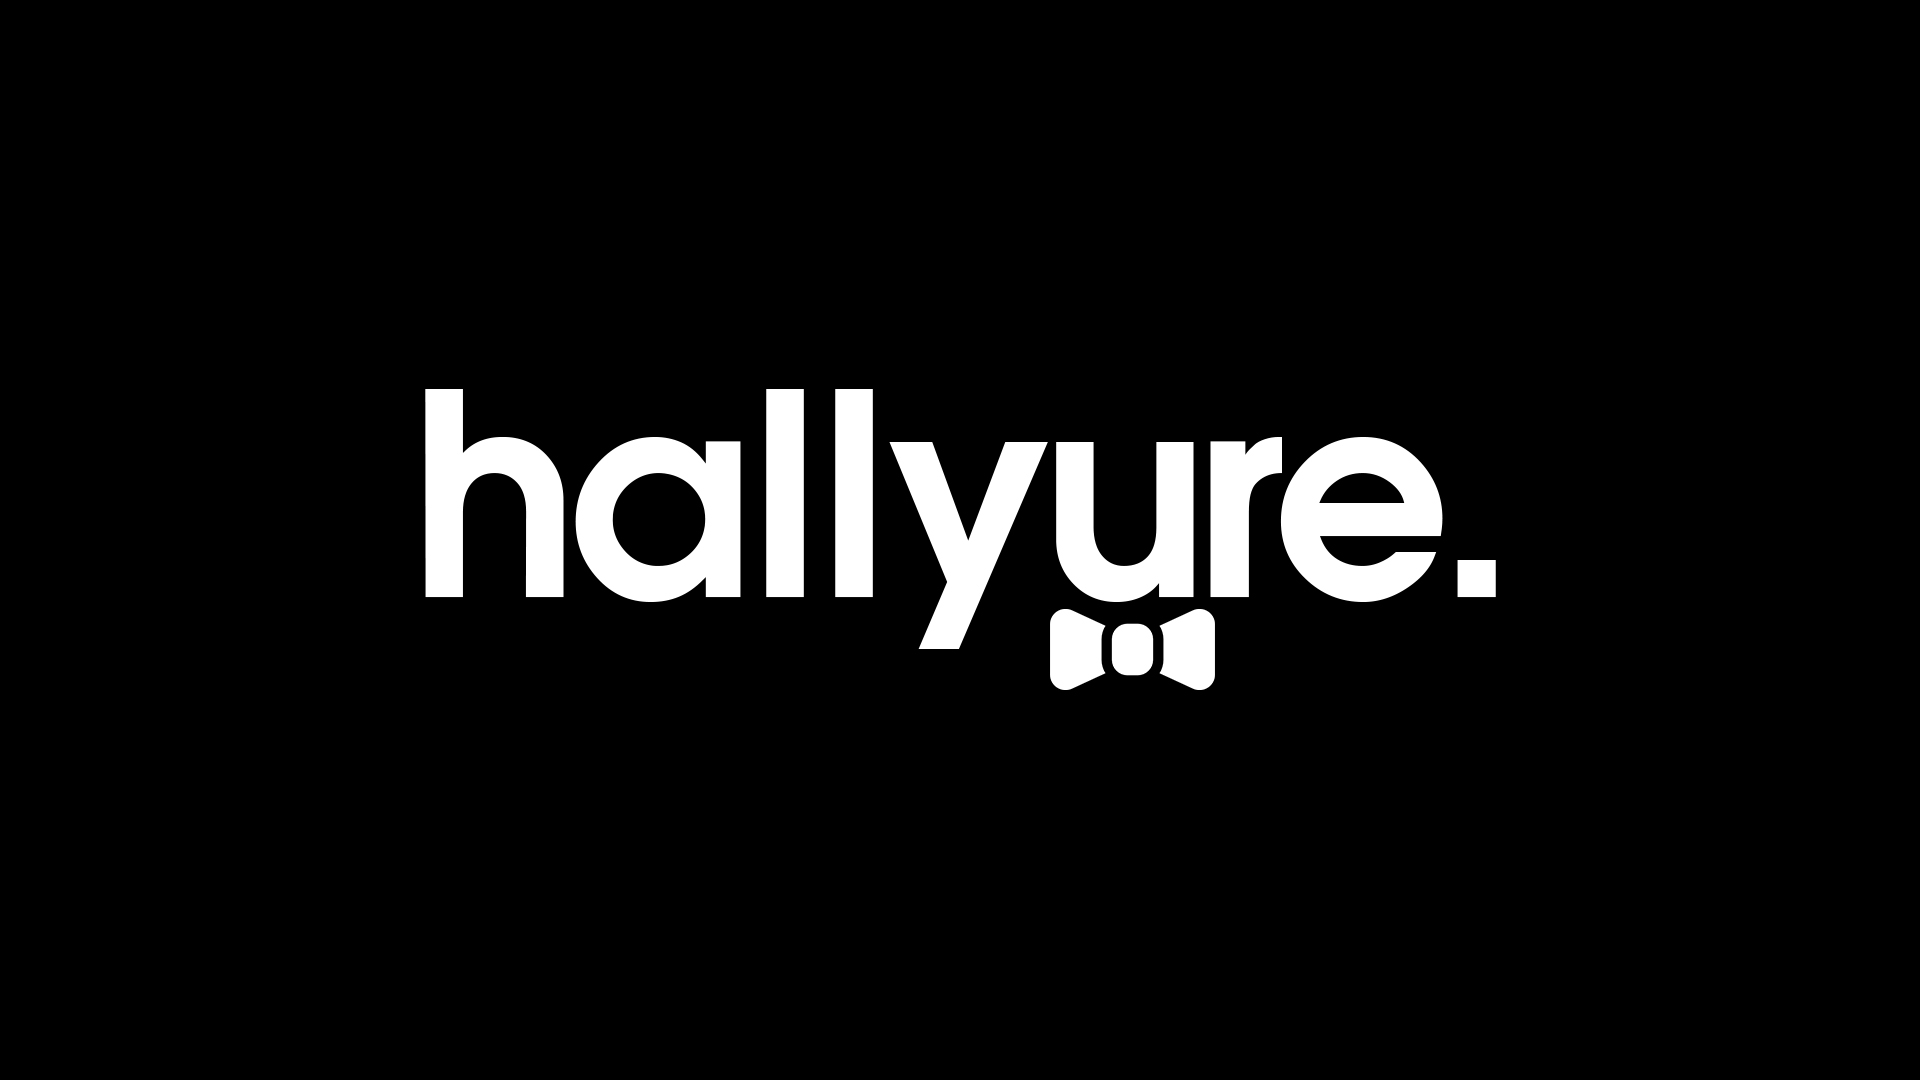 Hallyure